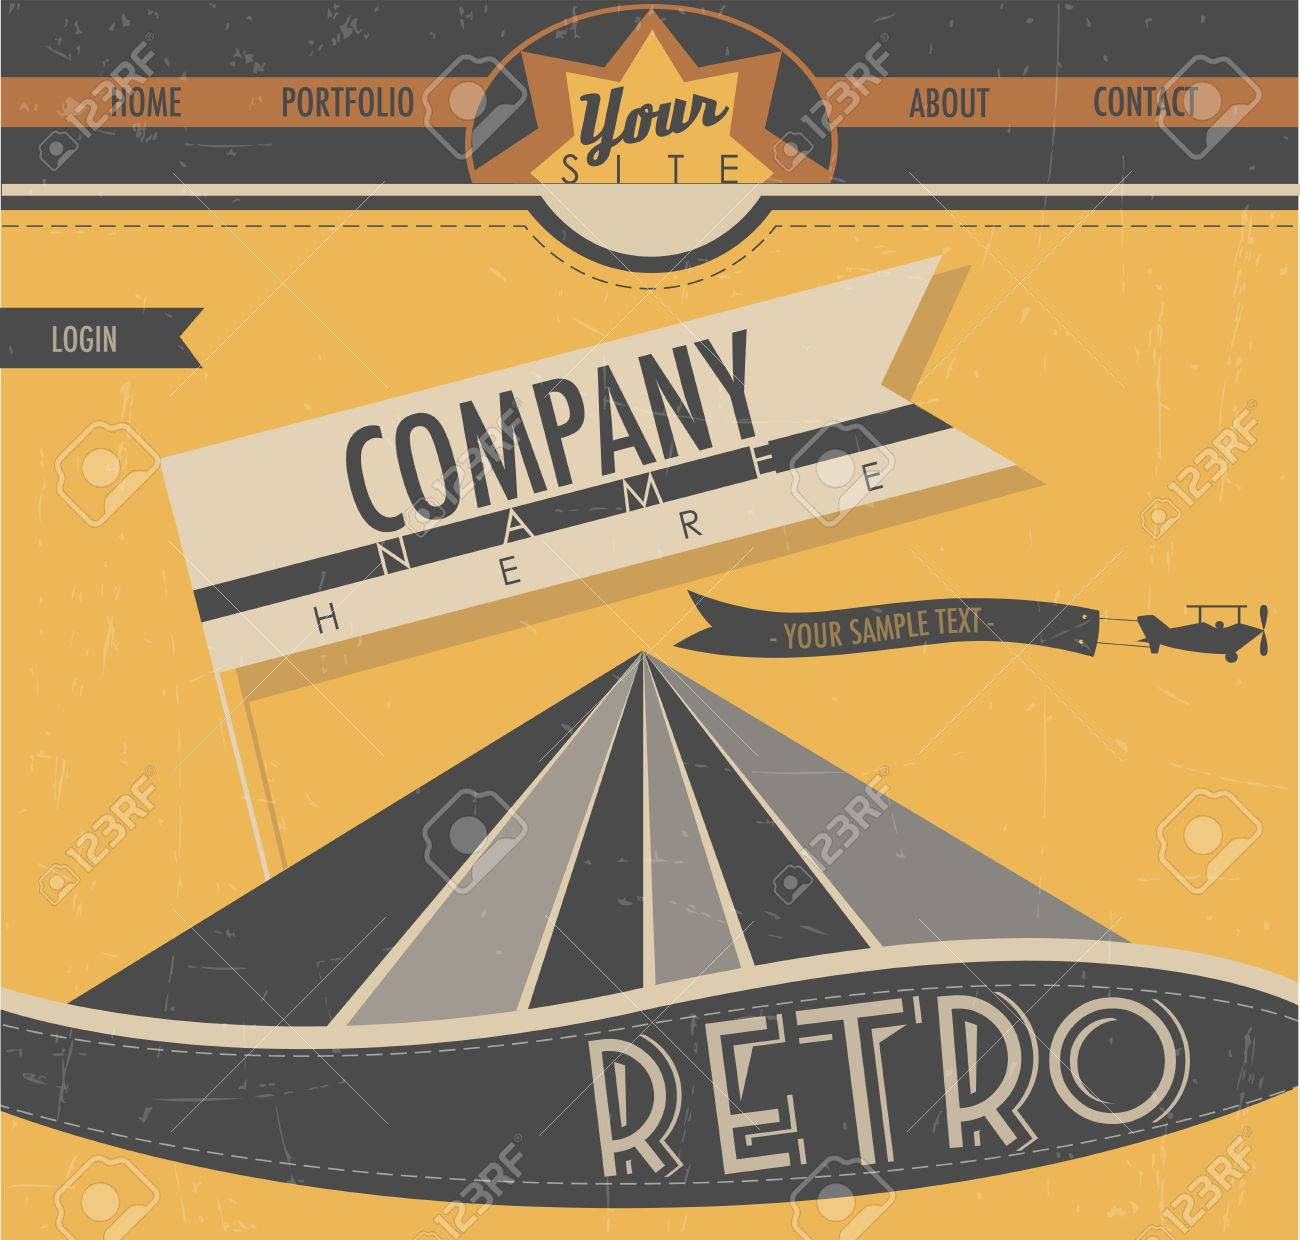 website template in retro style vintage style creative web design